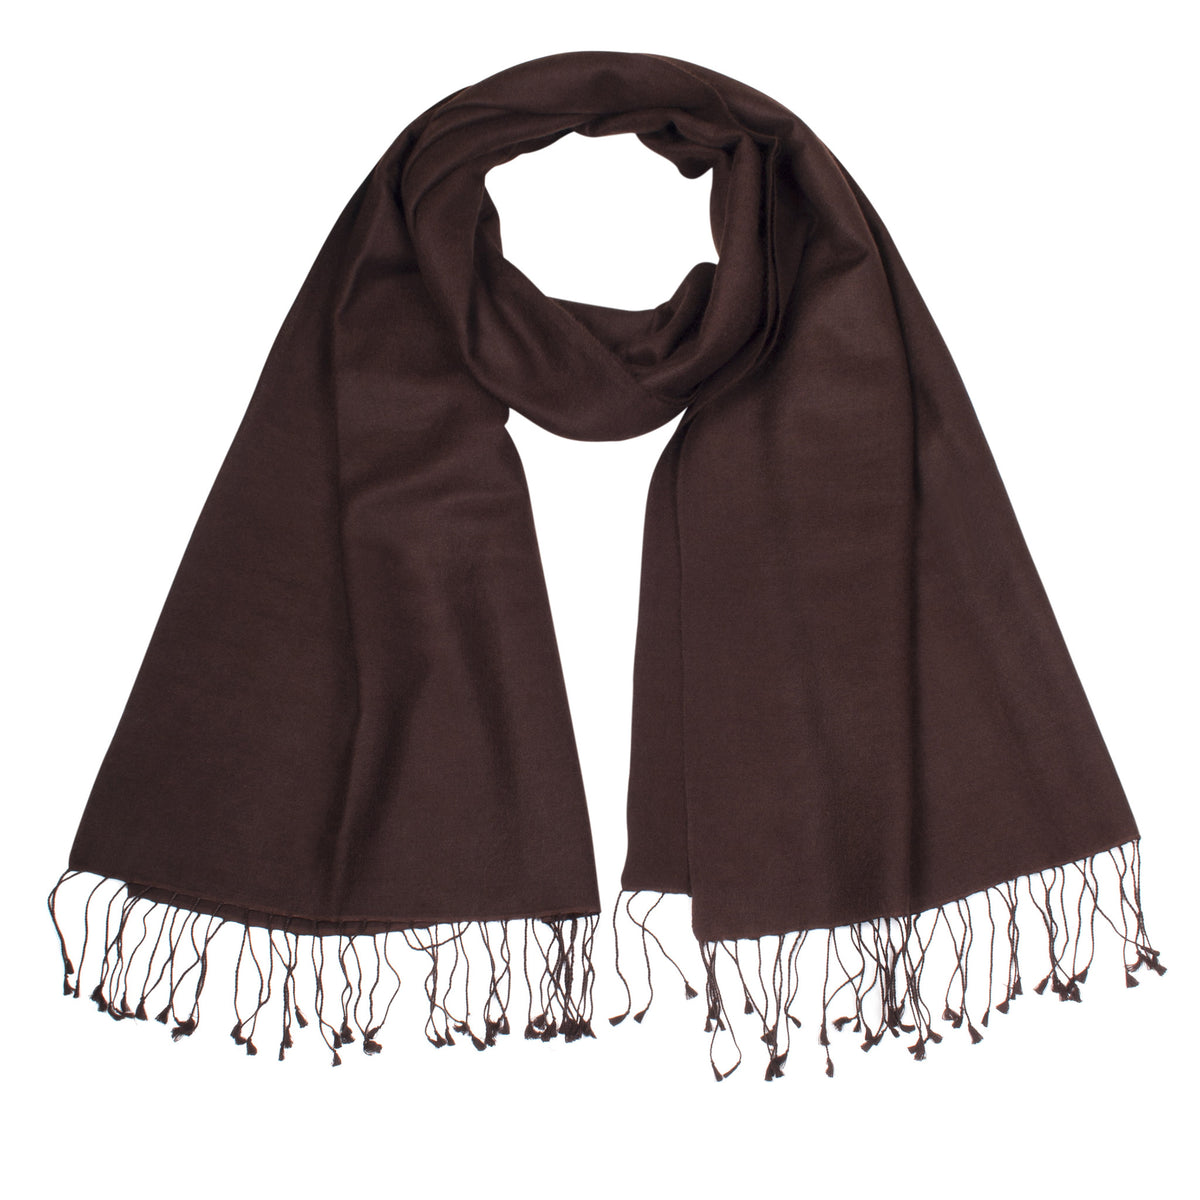 Chocolate| Brown Pashsmina Stole | buy now at The Cashmere Choice London